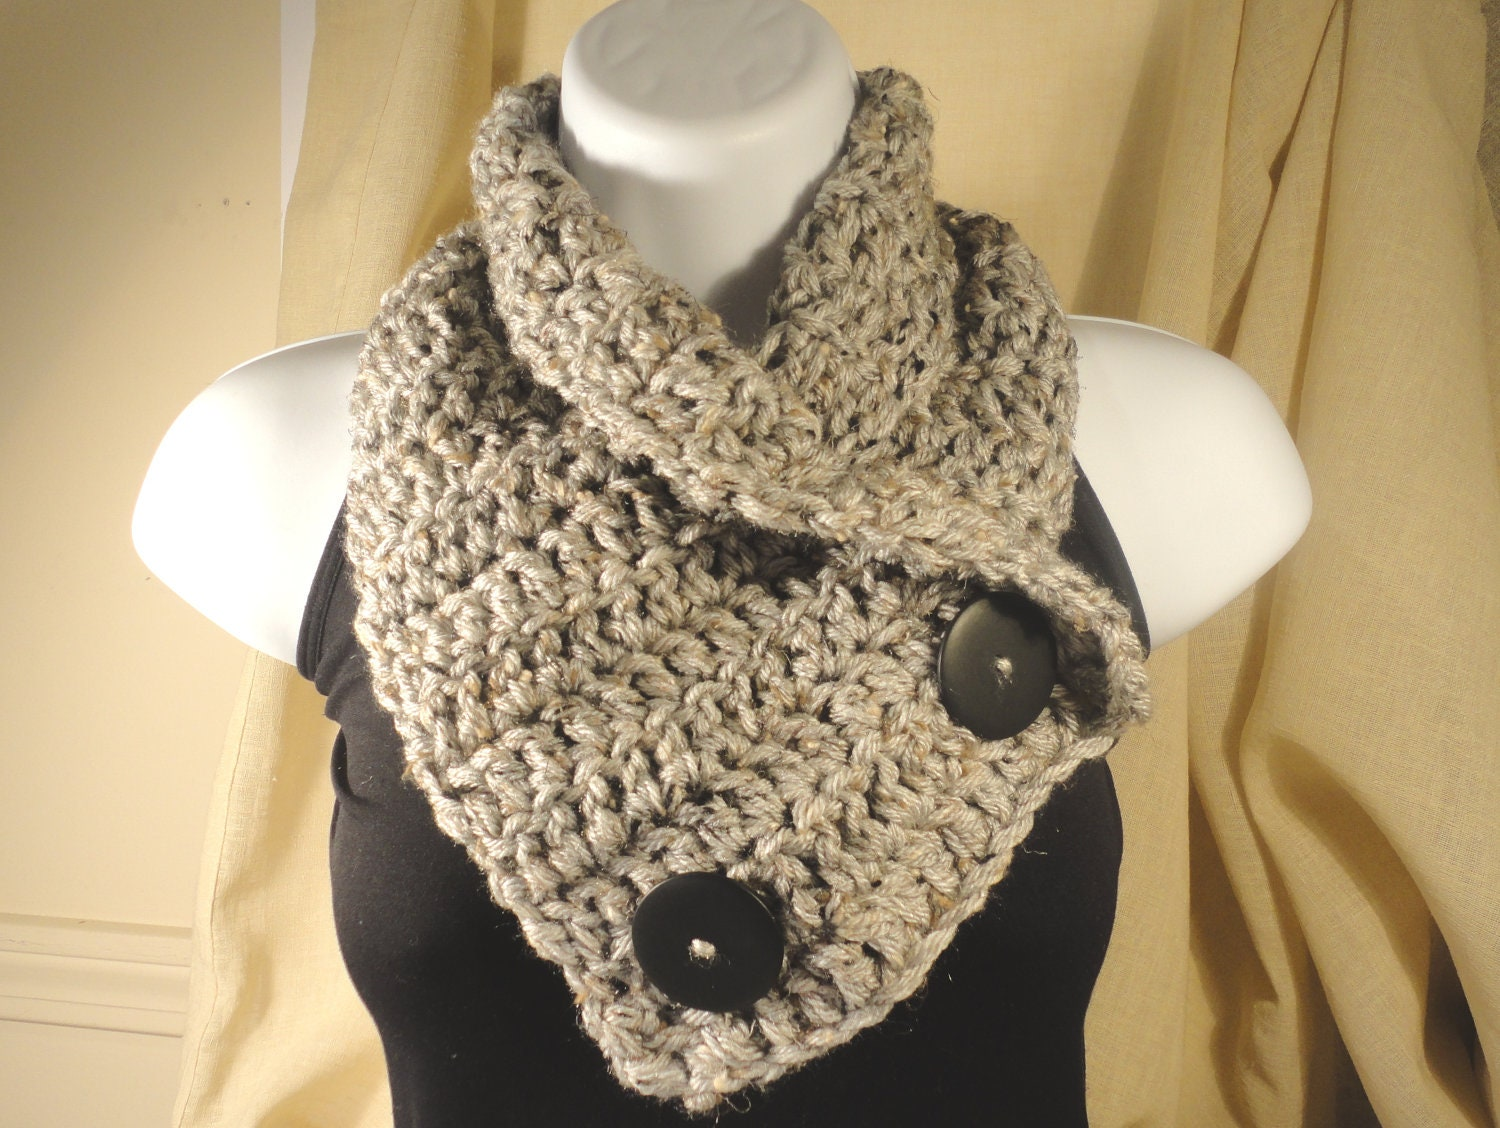 Crochet Pattern For Cowl Scarf : Crochet Scarf Cowl Neck Warmer with Buttons Gray Grey with